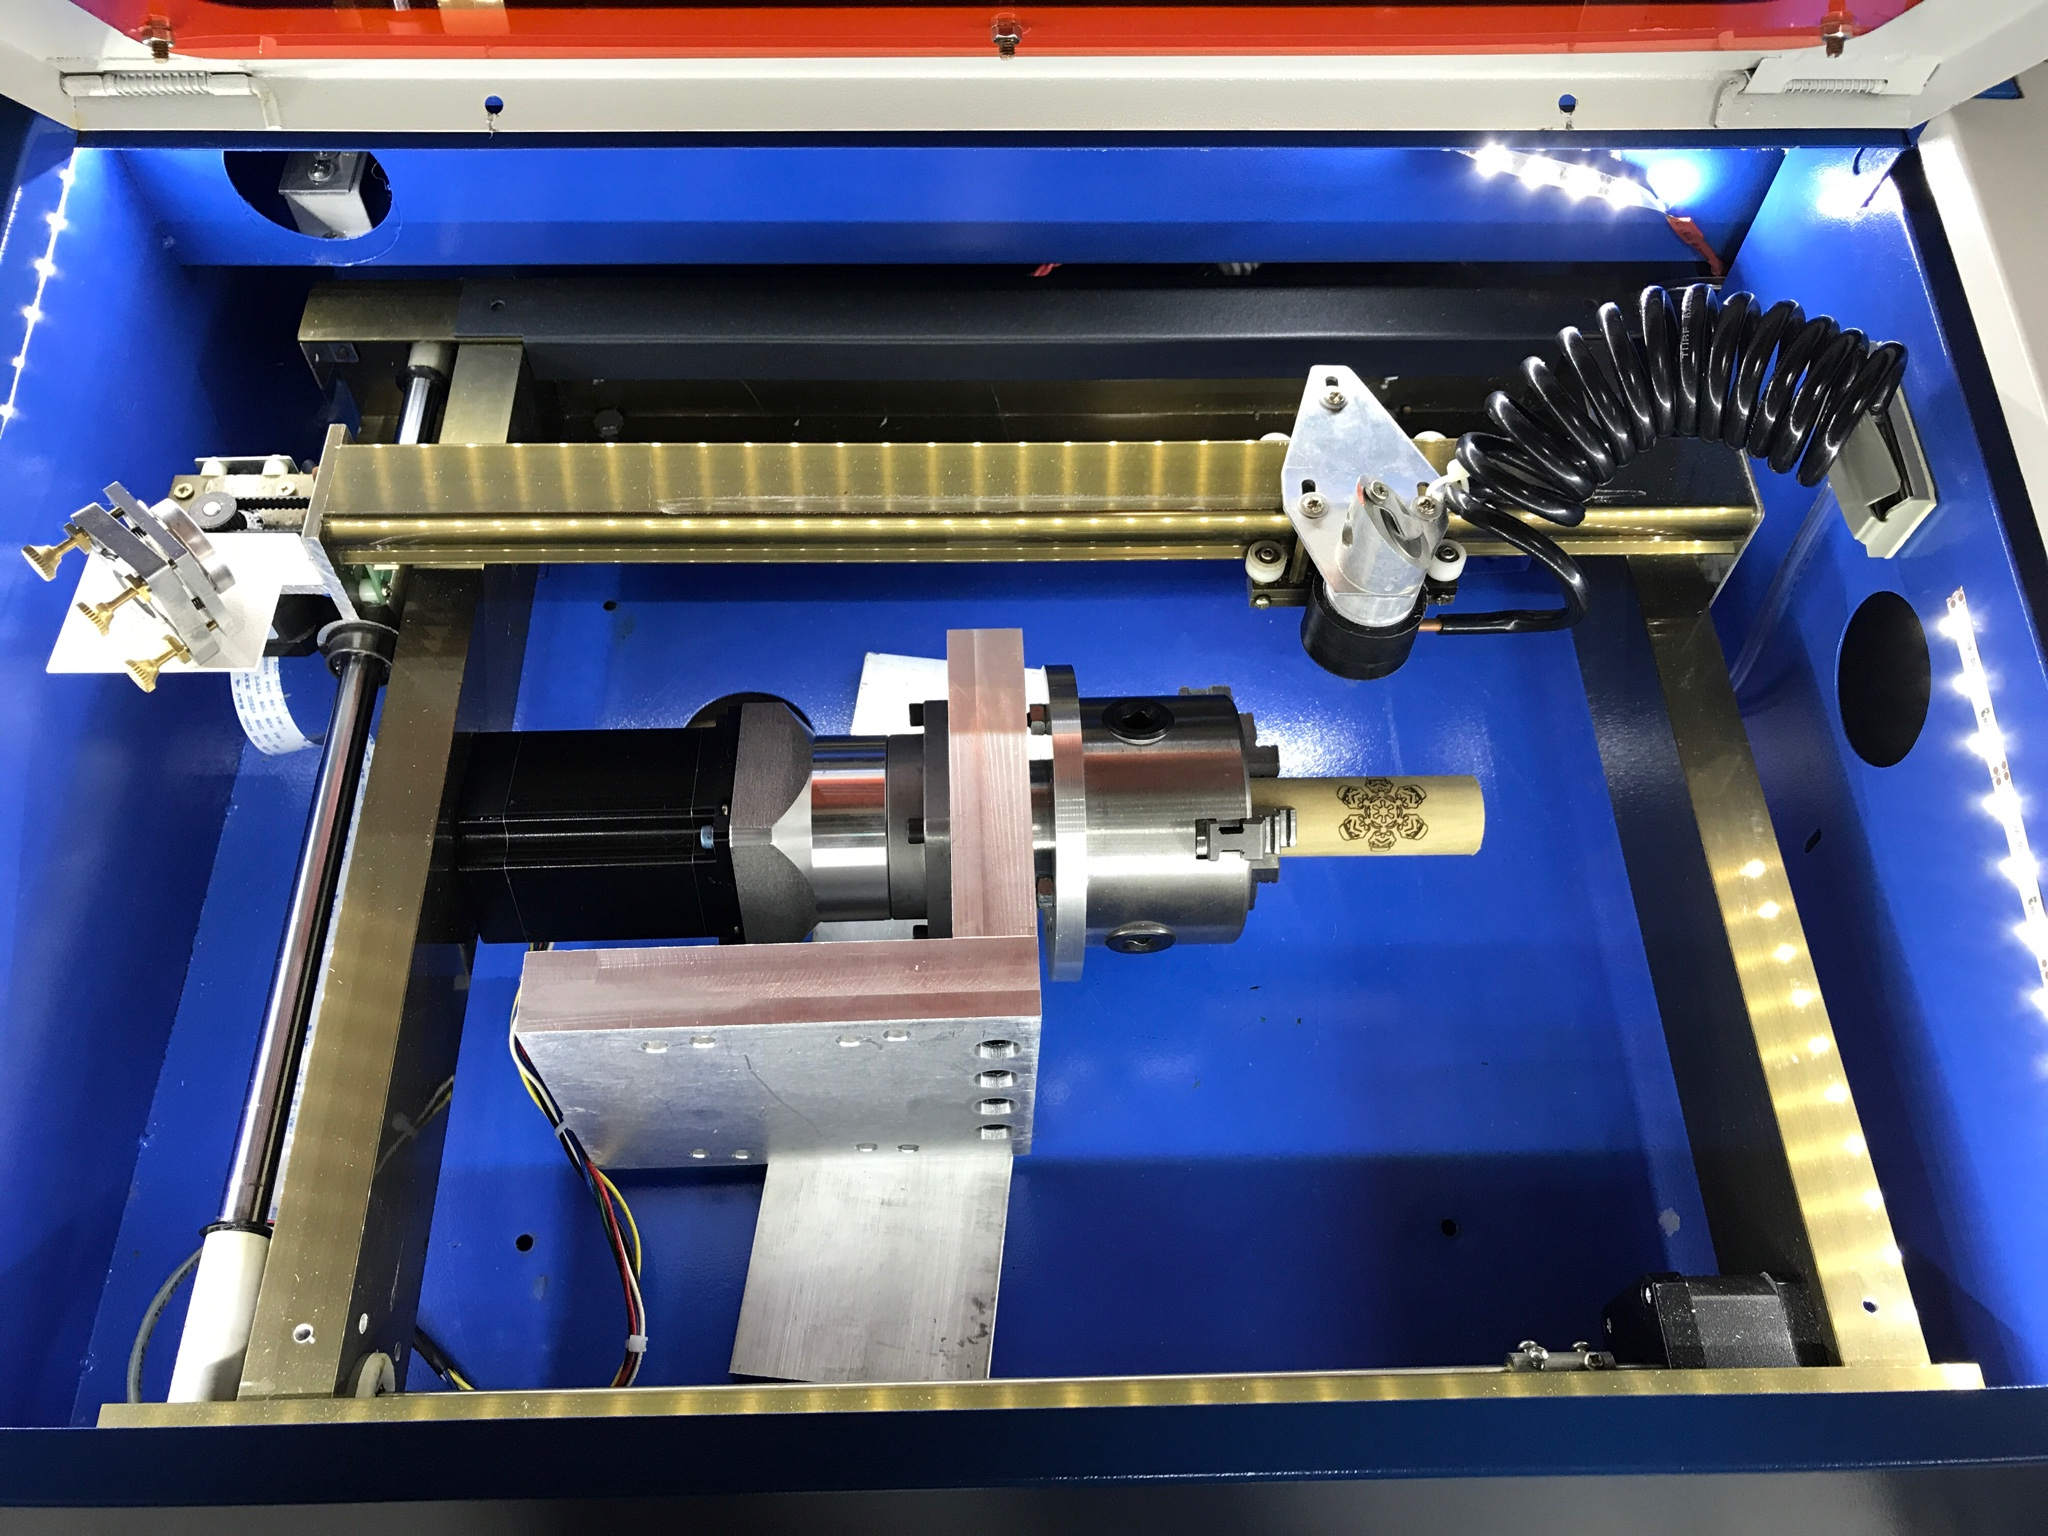 New Machine Build 80/20 extrusion router build [Archive] - CNCzone